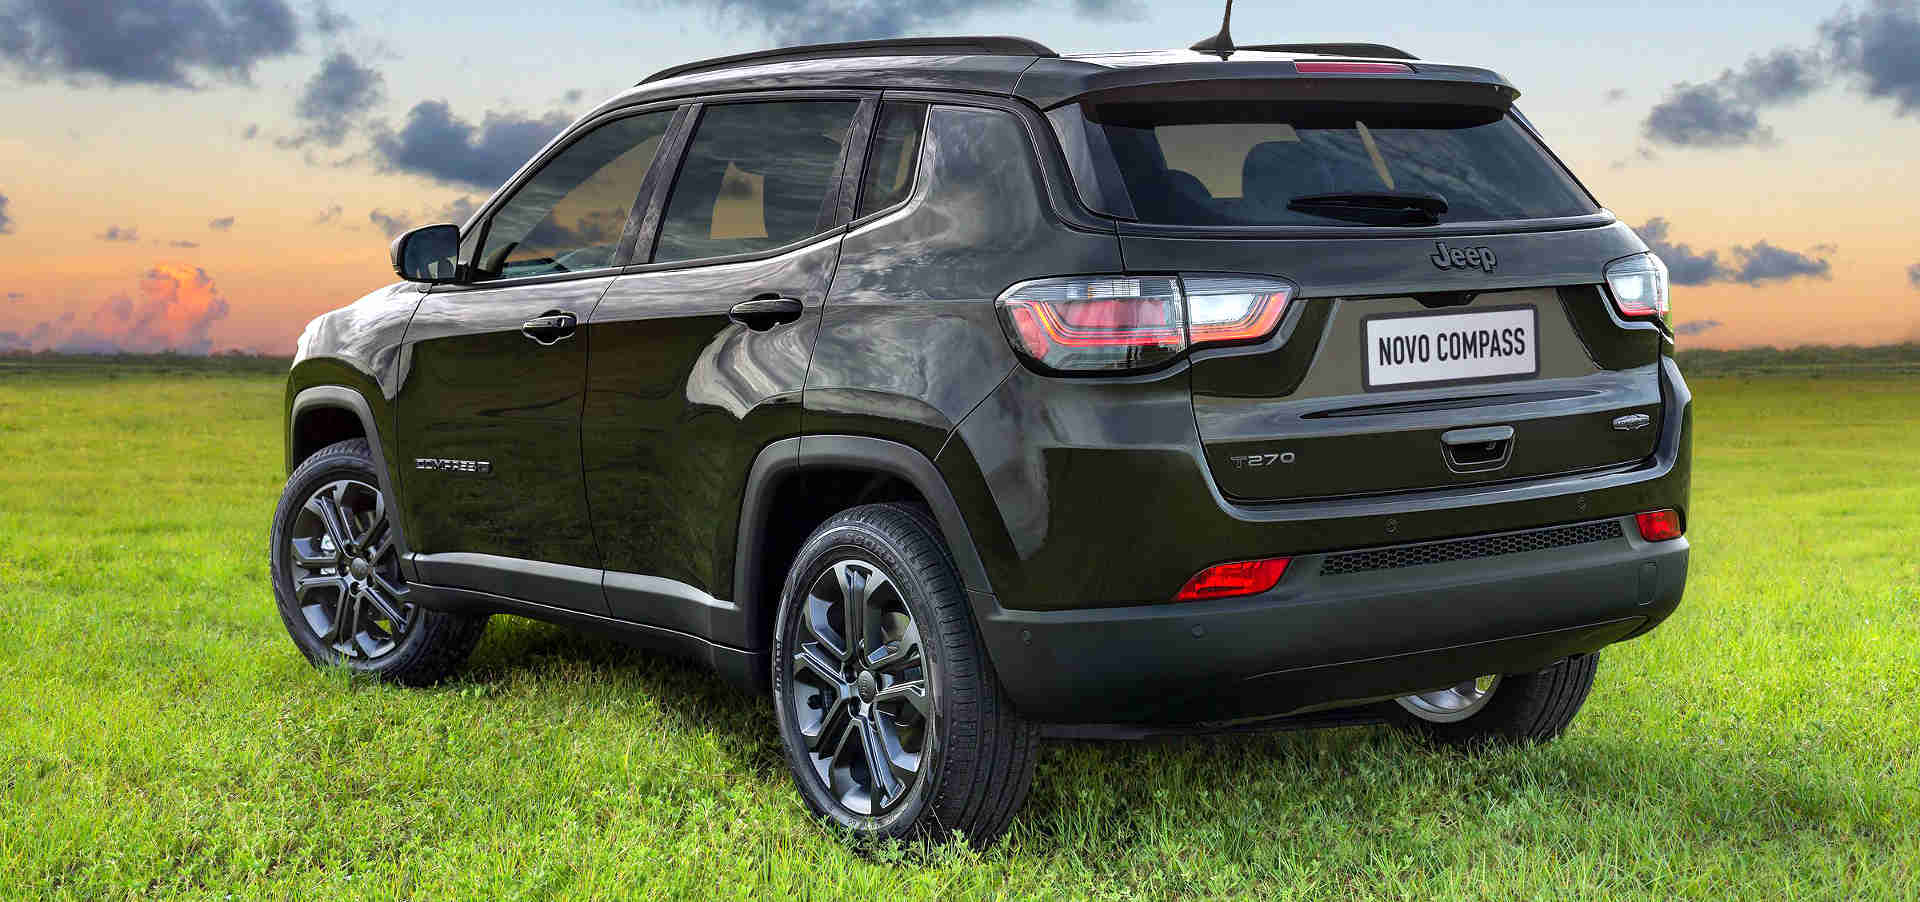 Foto de capa do novo Jeep Compass 2022